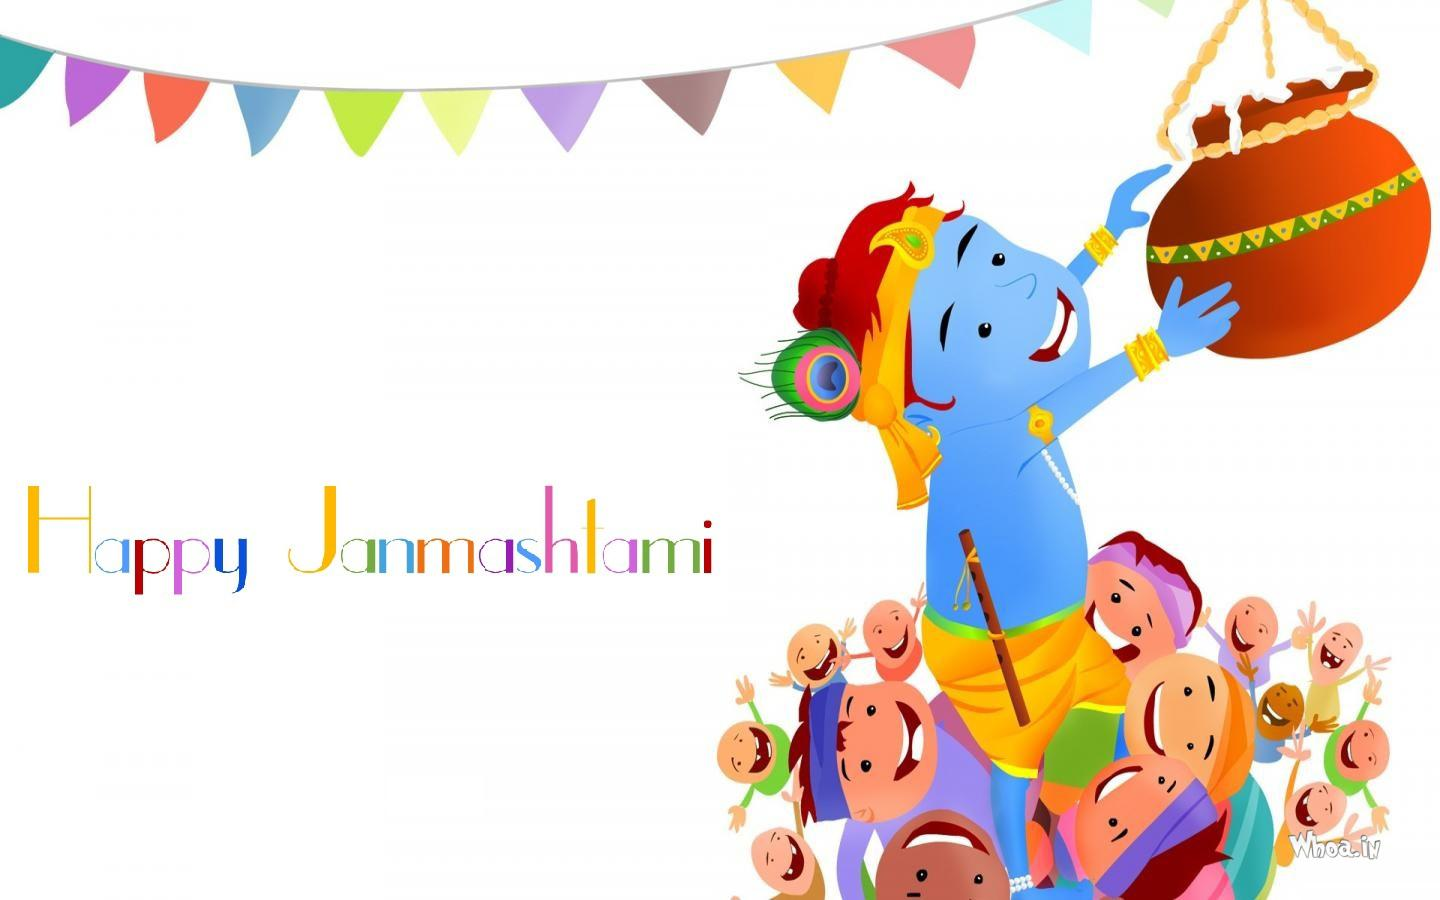 Happy Janmashtami 2019 Cartoon Wallpaper